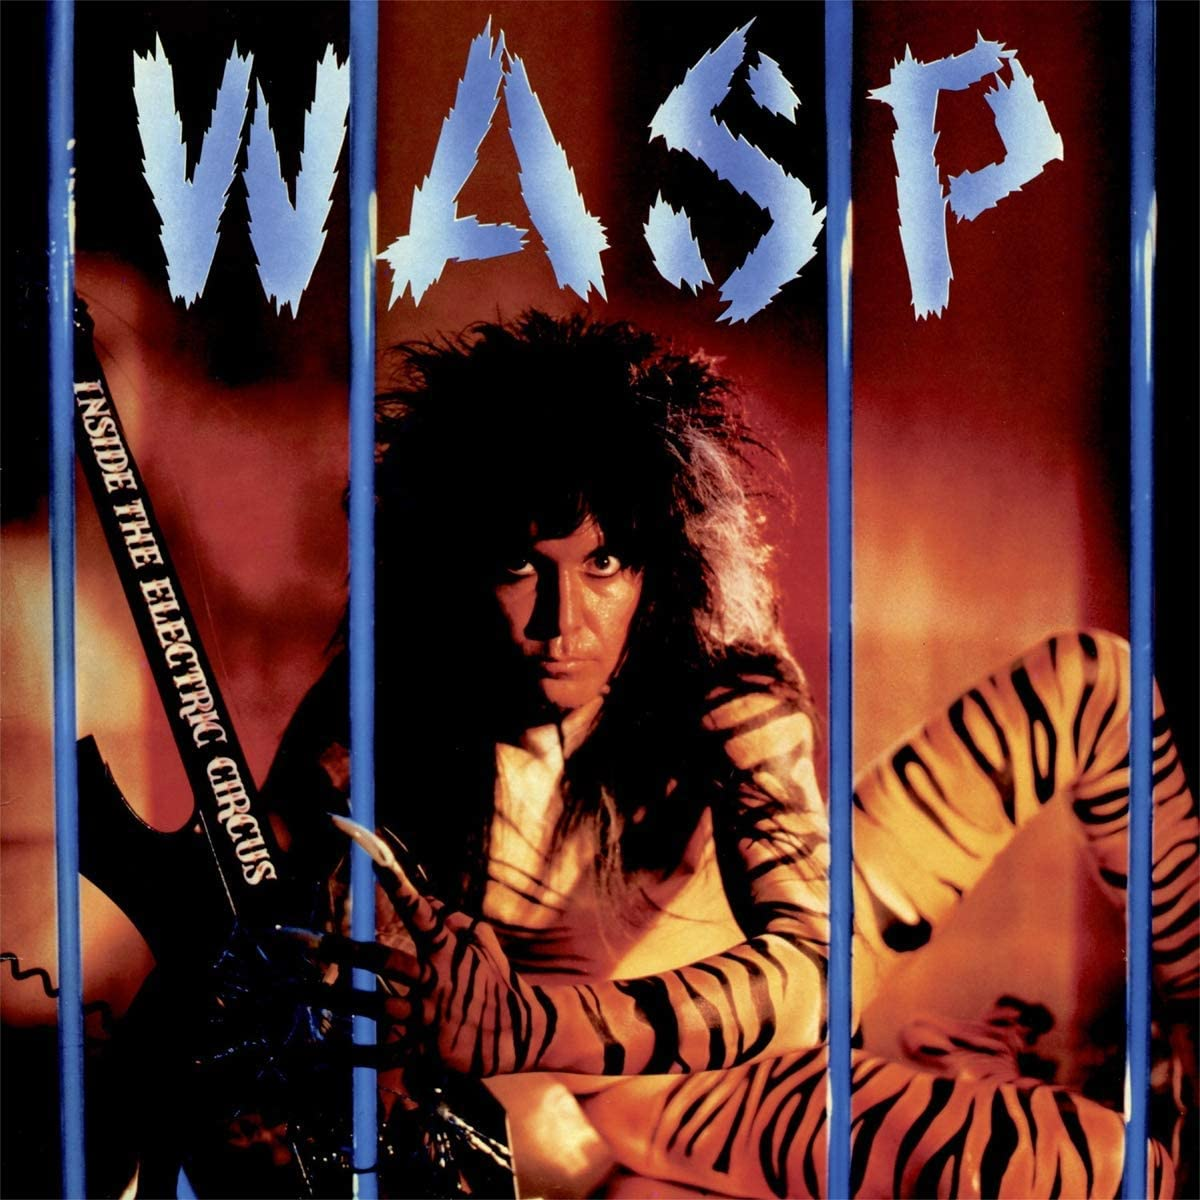 W.A.S.P/Inside the Electric Circus [CD]